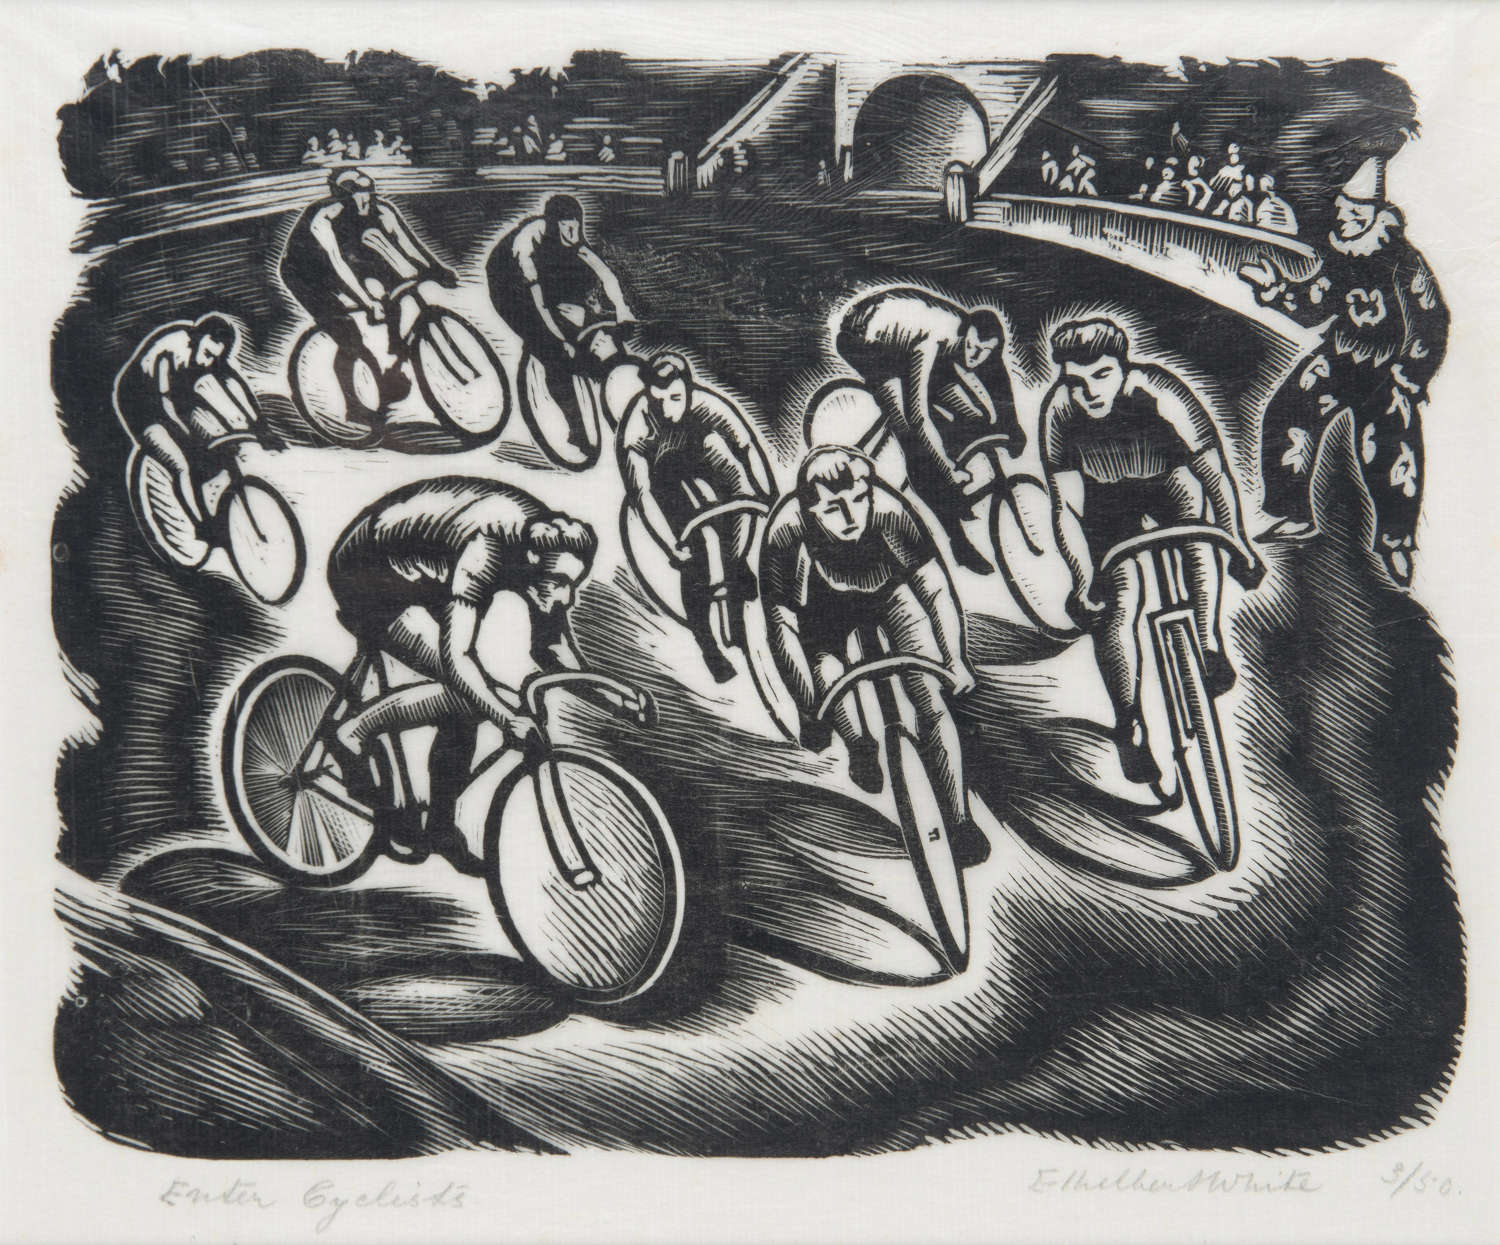 'Enter Cyclists' Ethelbert White (1891-1972)